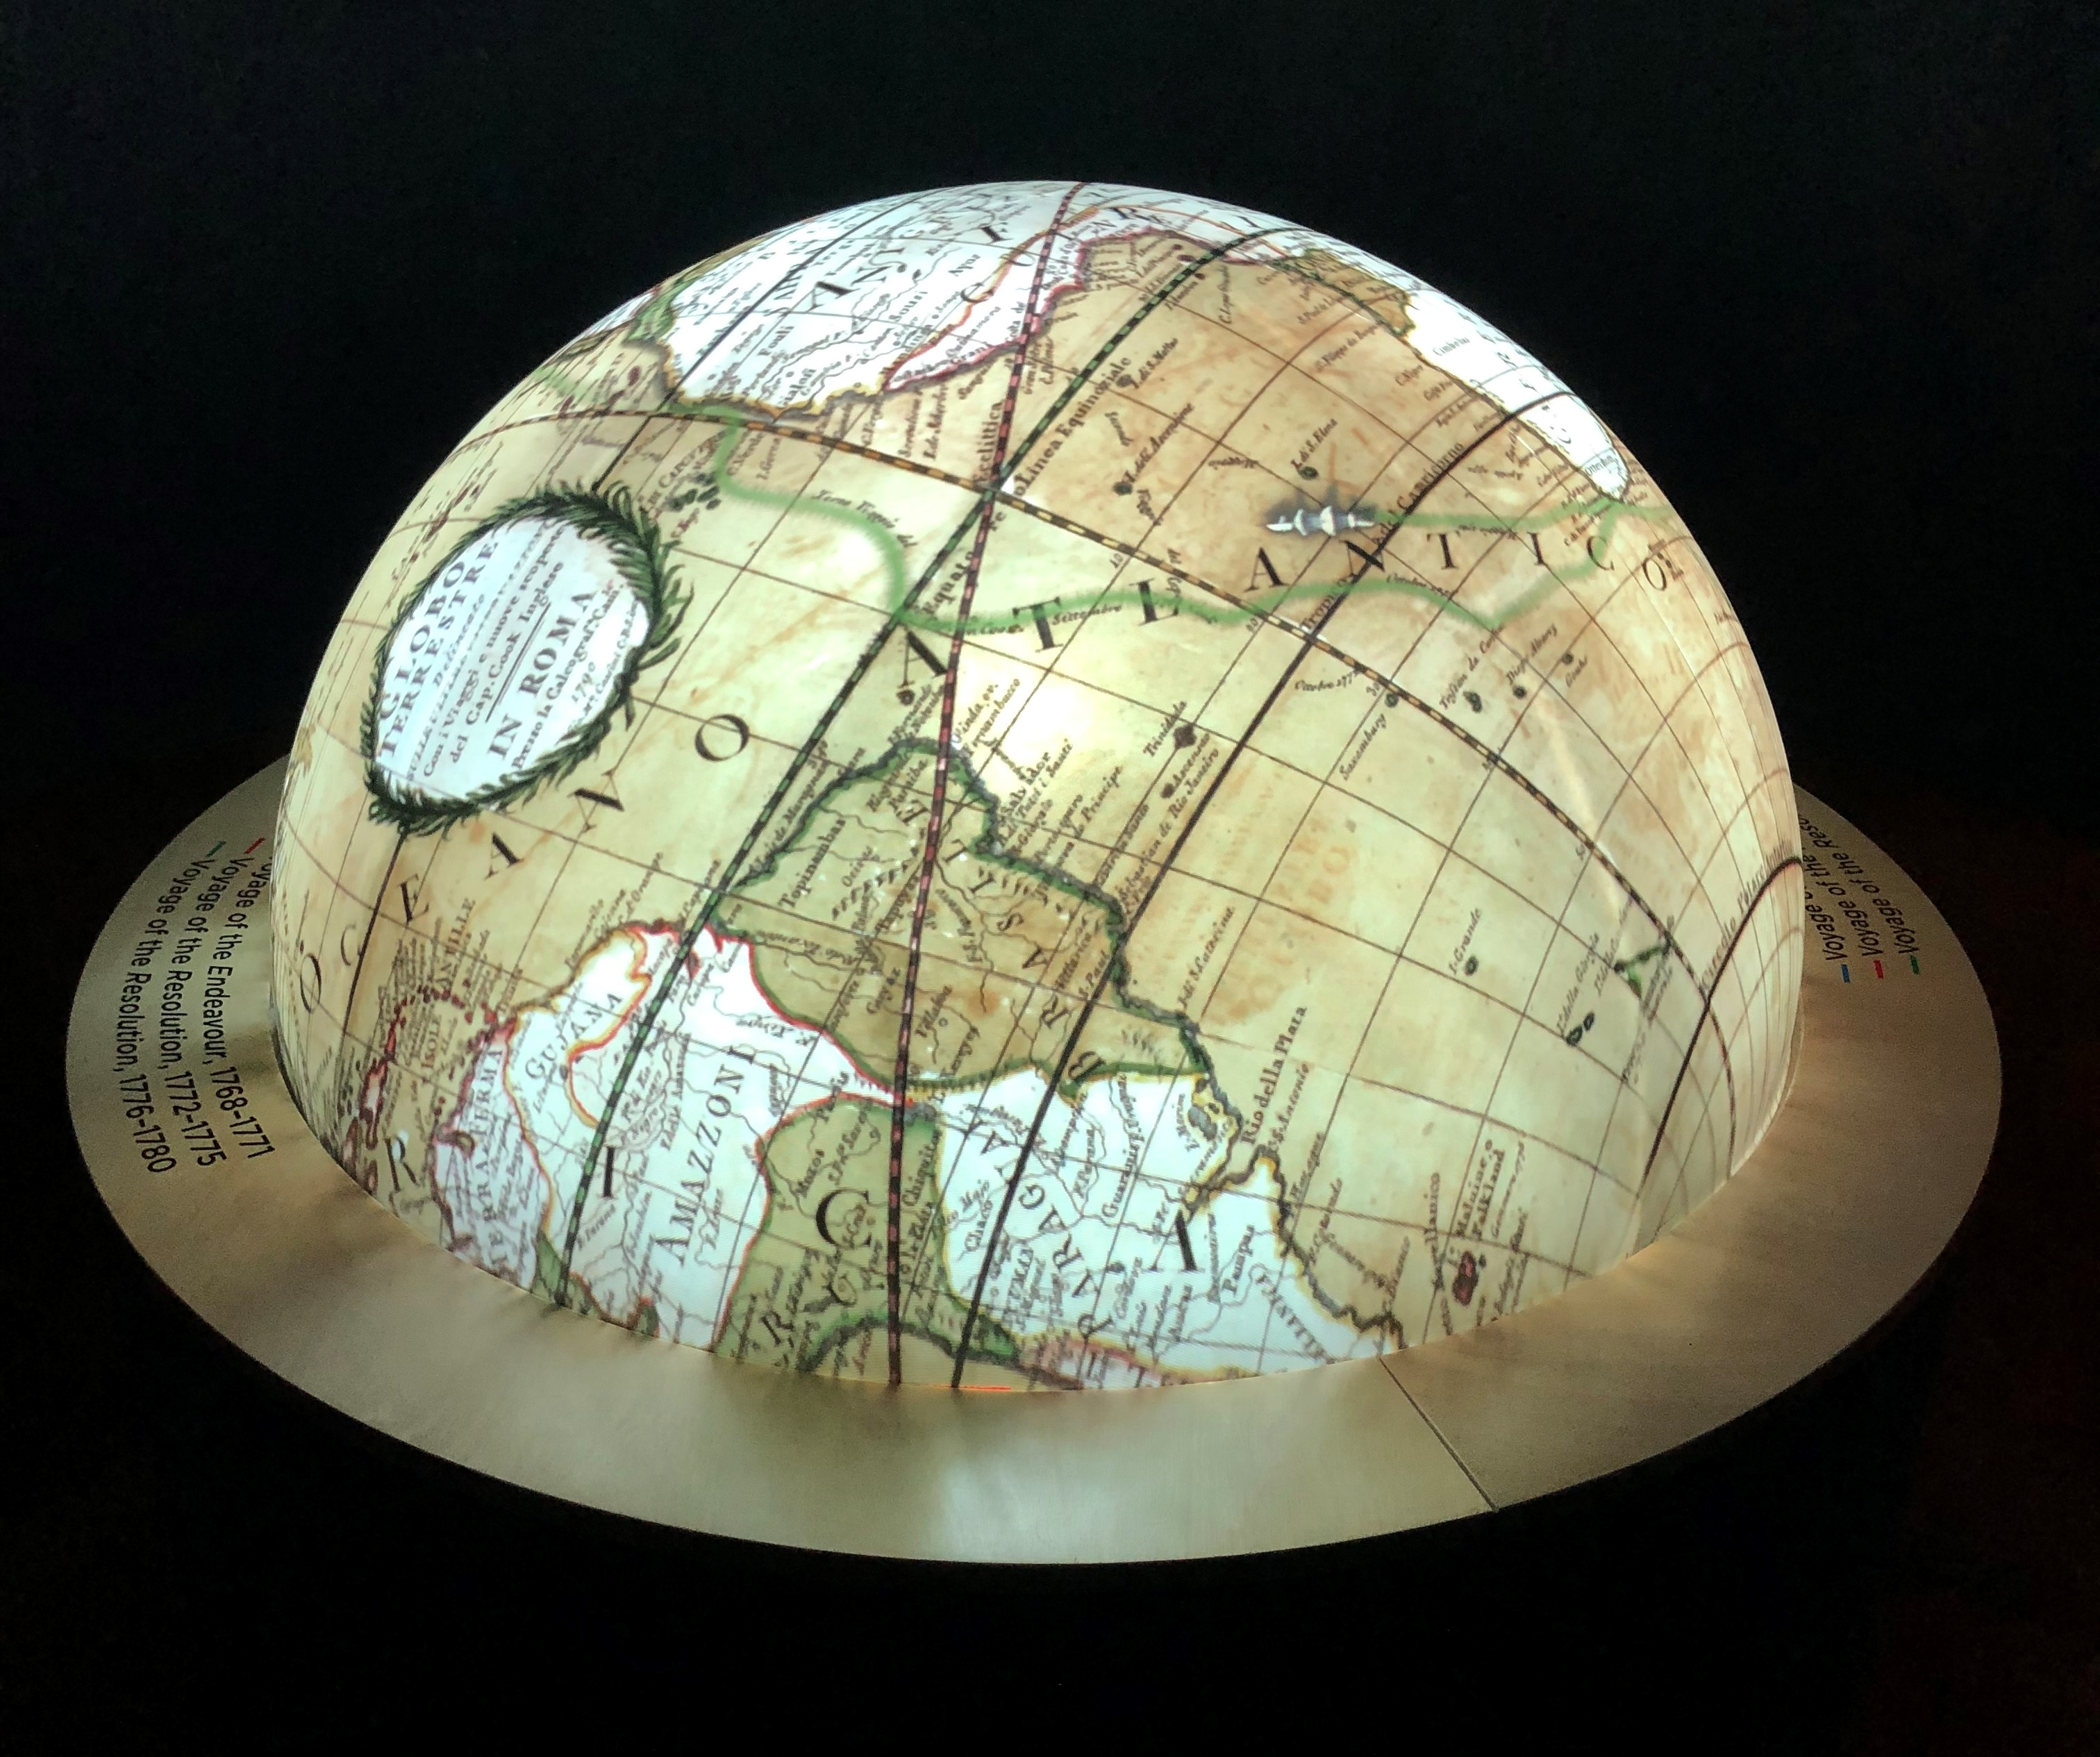 Illuminated globe depicting the travels of Captain James Cook from the Cook and the Pacific exhibition at the National Library of Australia